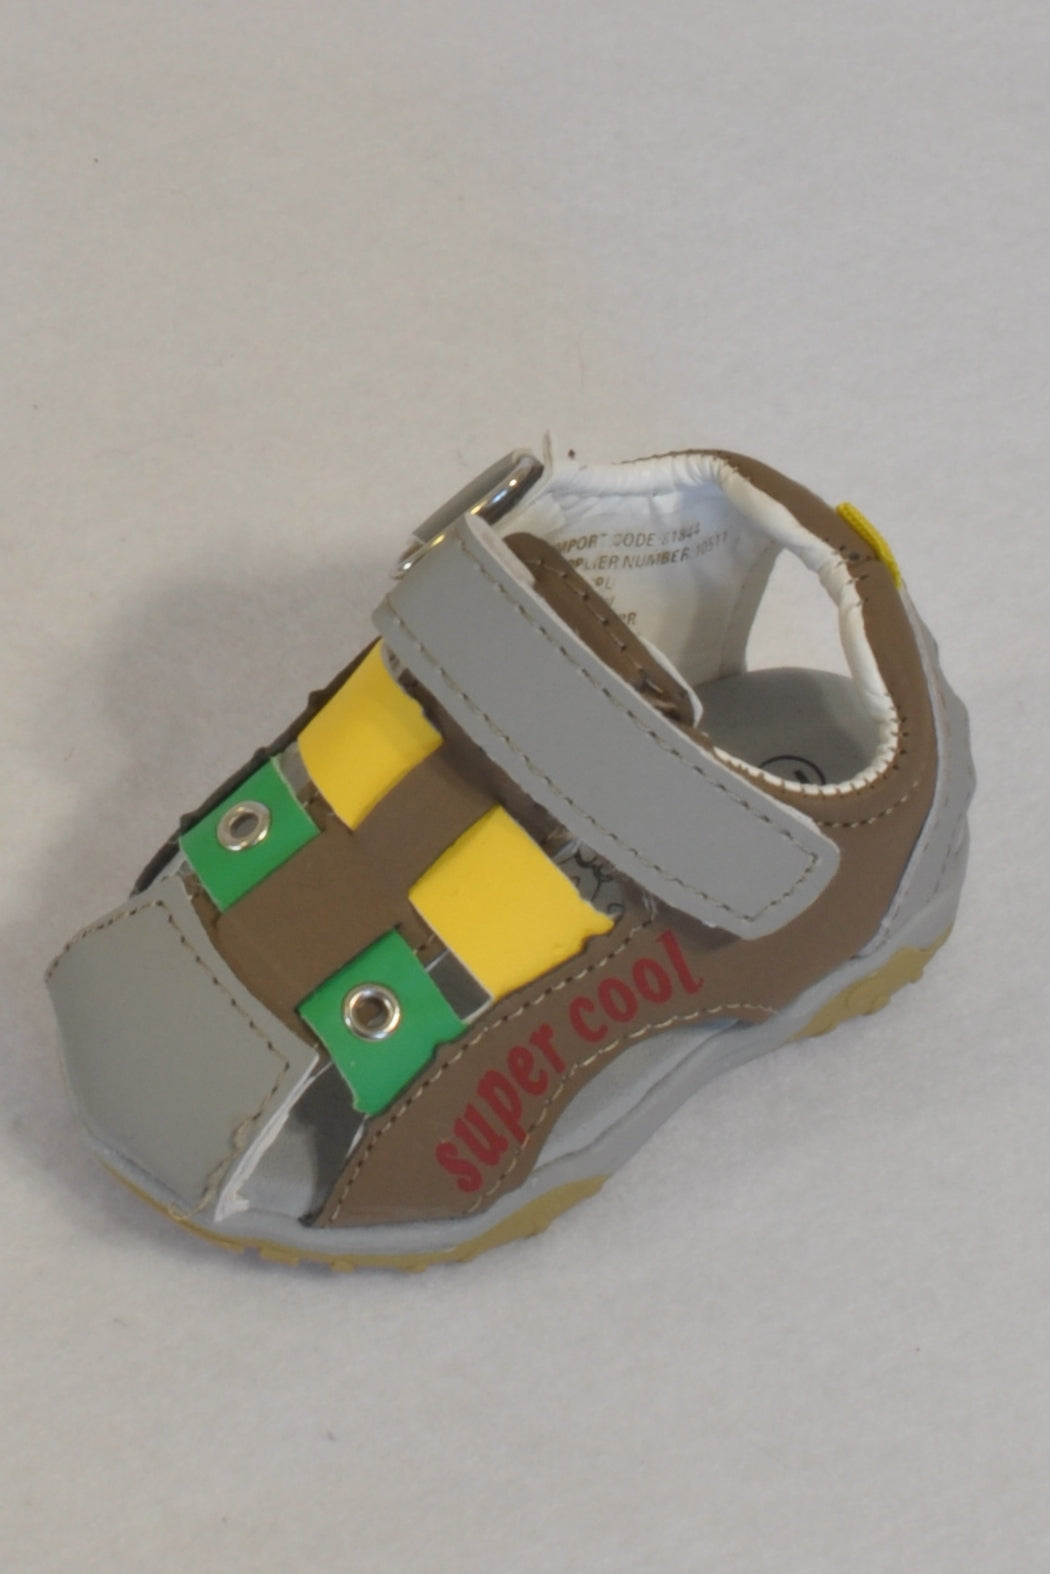 New Edgars Yellow & Green Strap Super Cool Size 2 Shoes Boys 3-6 months